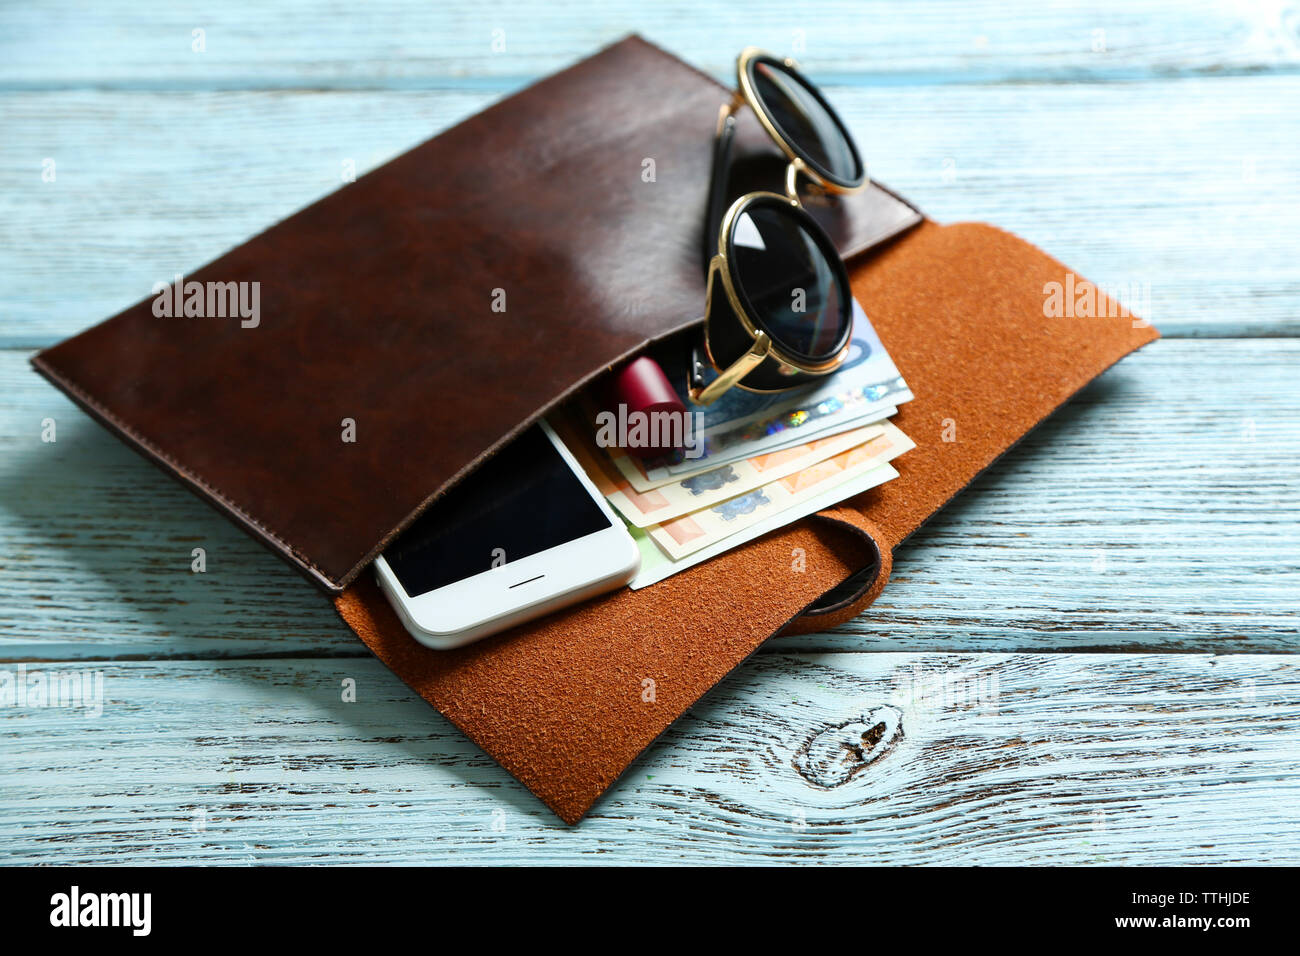 Leather purse with glasses, mobile phone and euro banknotes on wooden background - Stock Image